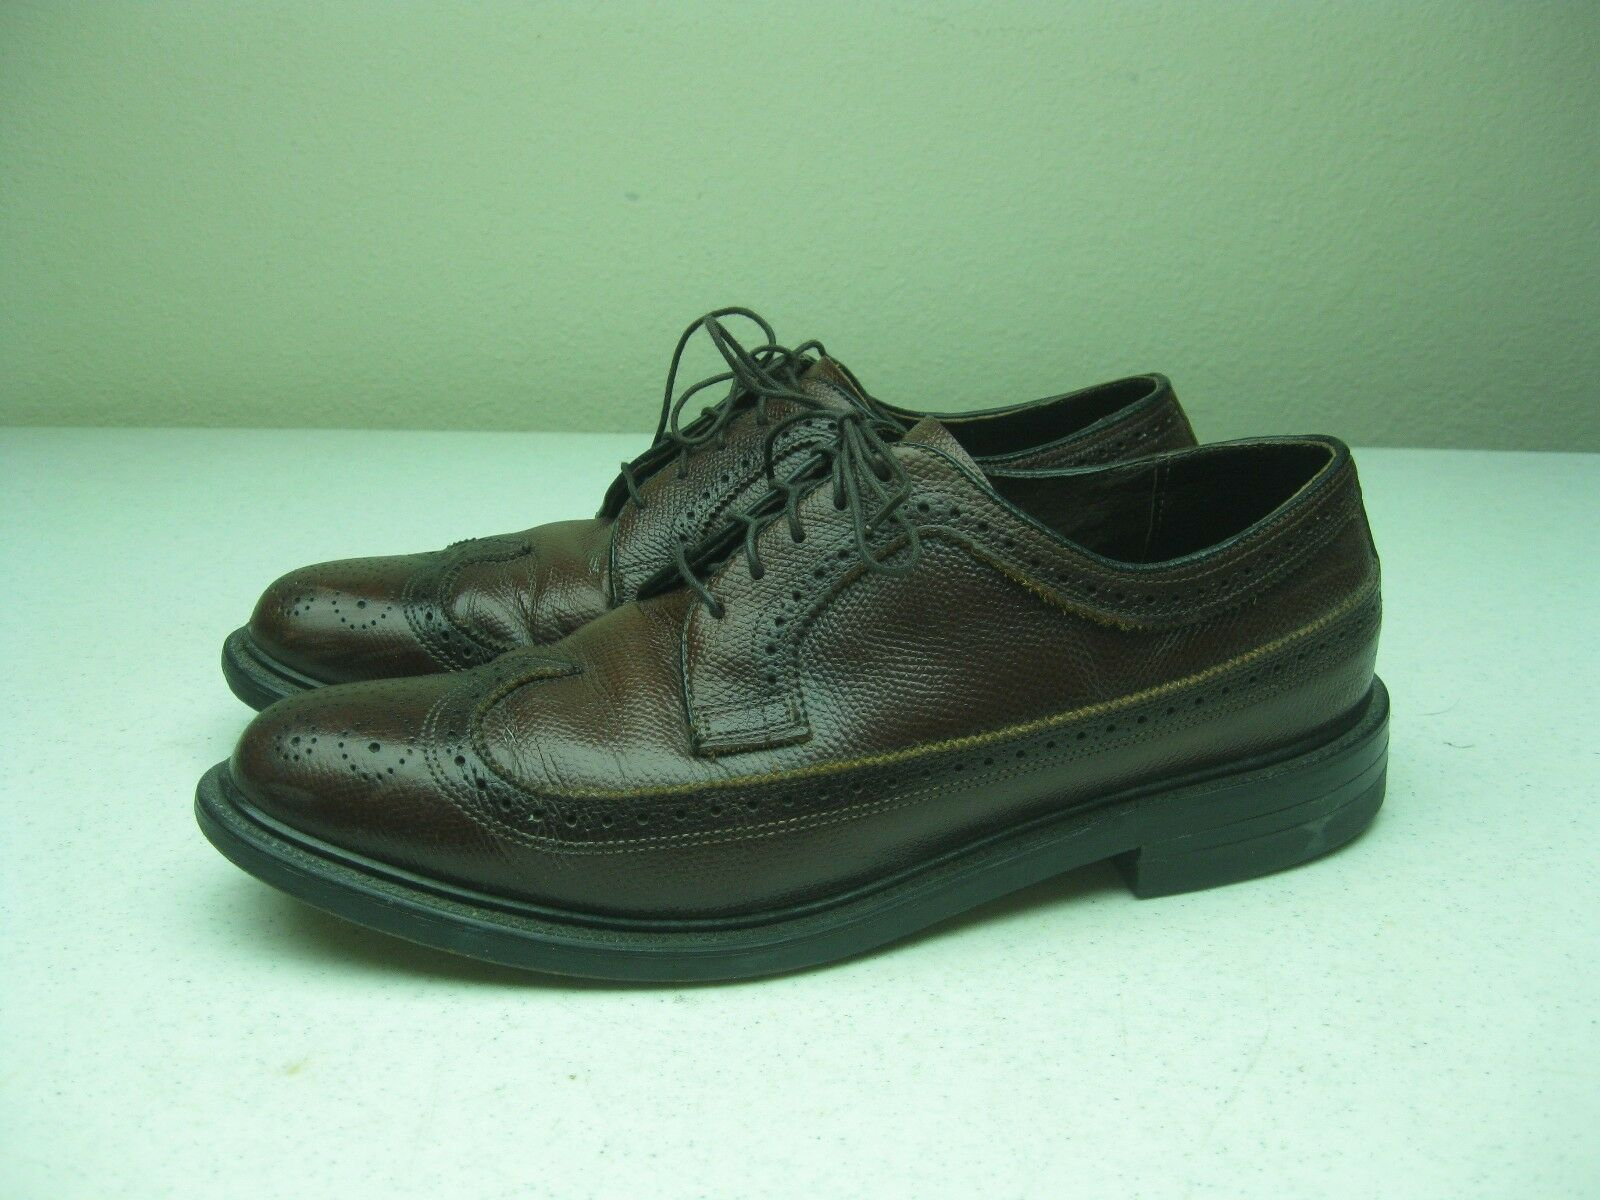 VINTAGE BROWN DISTRESSED MADE IN  A WING TIP OXFORD LACE UP LEATHER SHOES 9 D